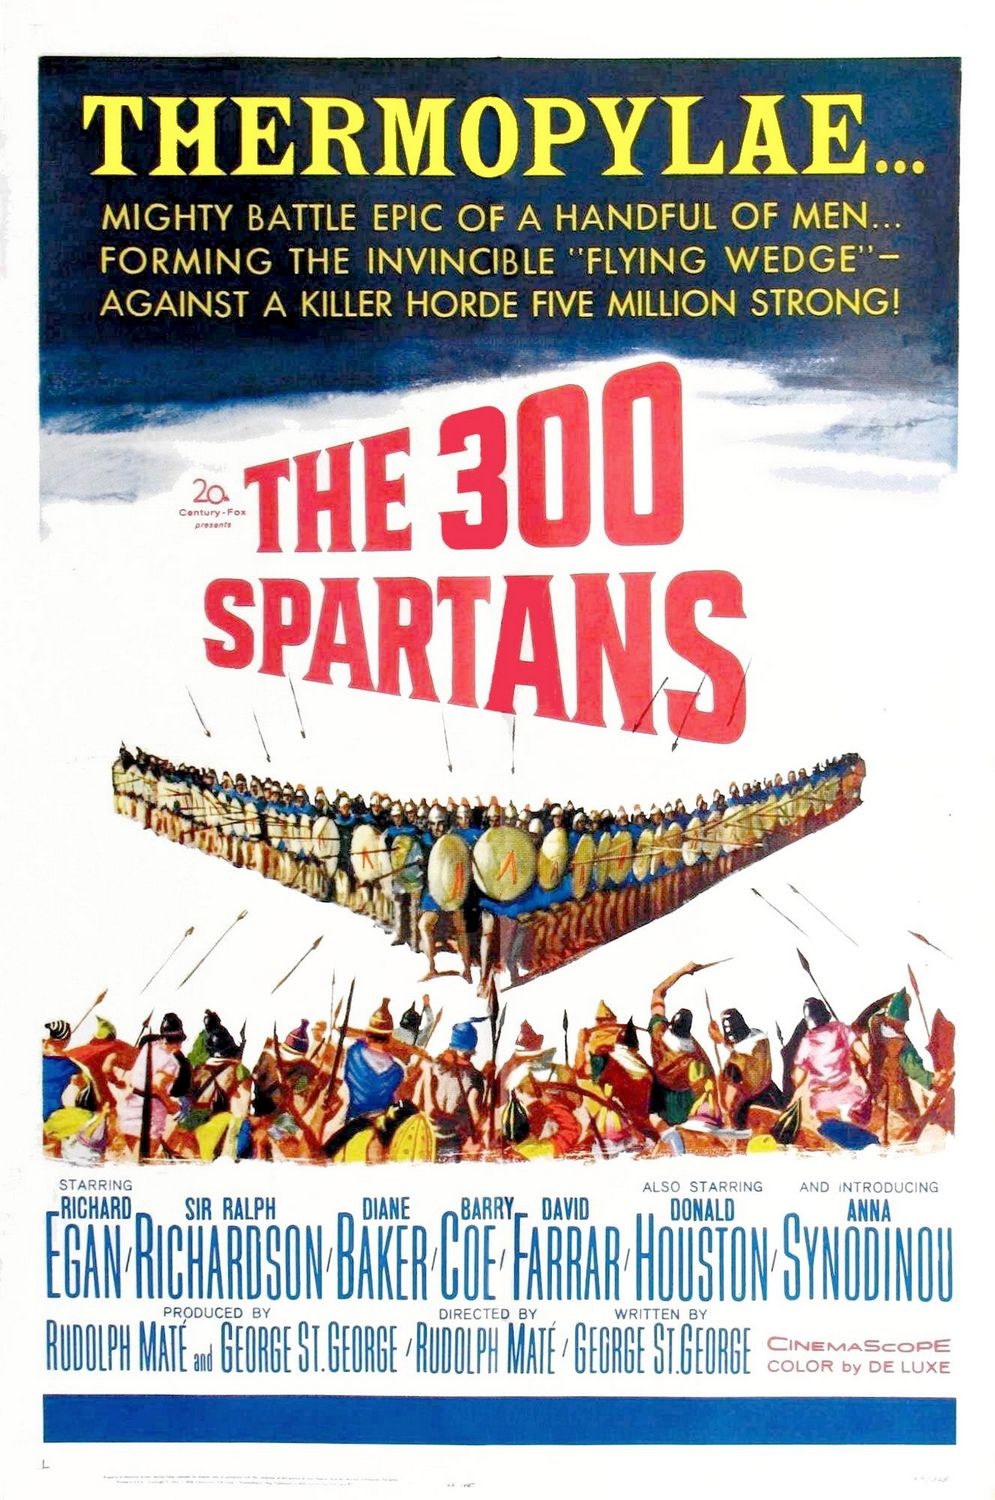 the-300-spartans-extra-large-movie-poster-image-internet-by-impawards.com-1962-posters-three_hundred_spartans_xlg